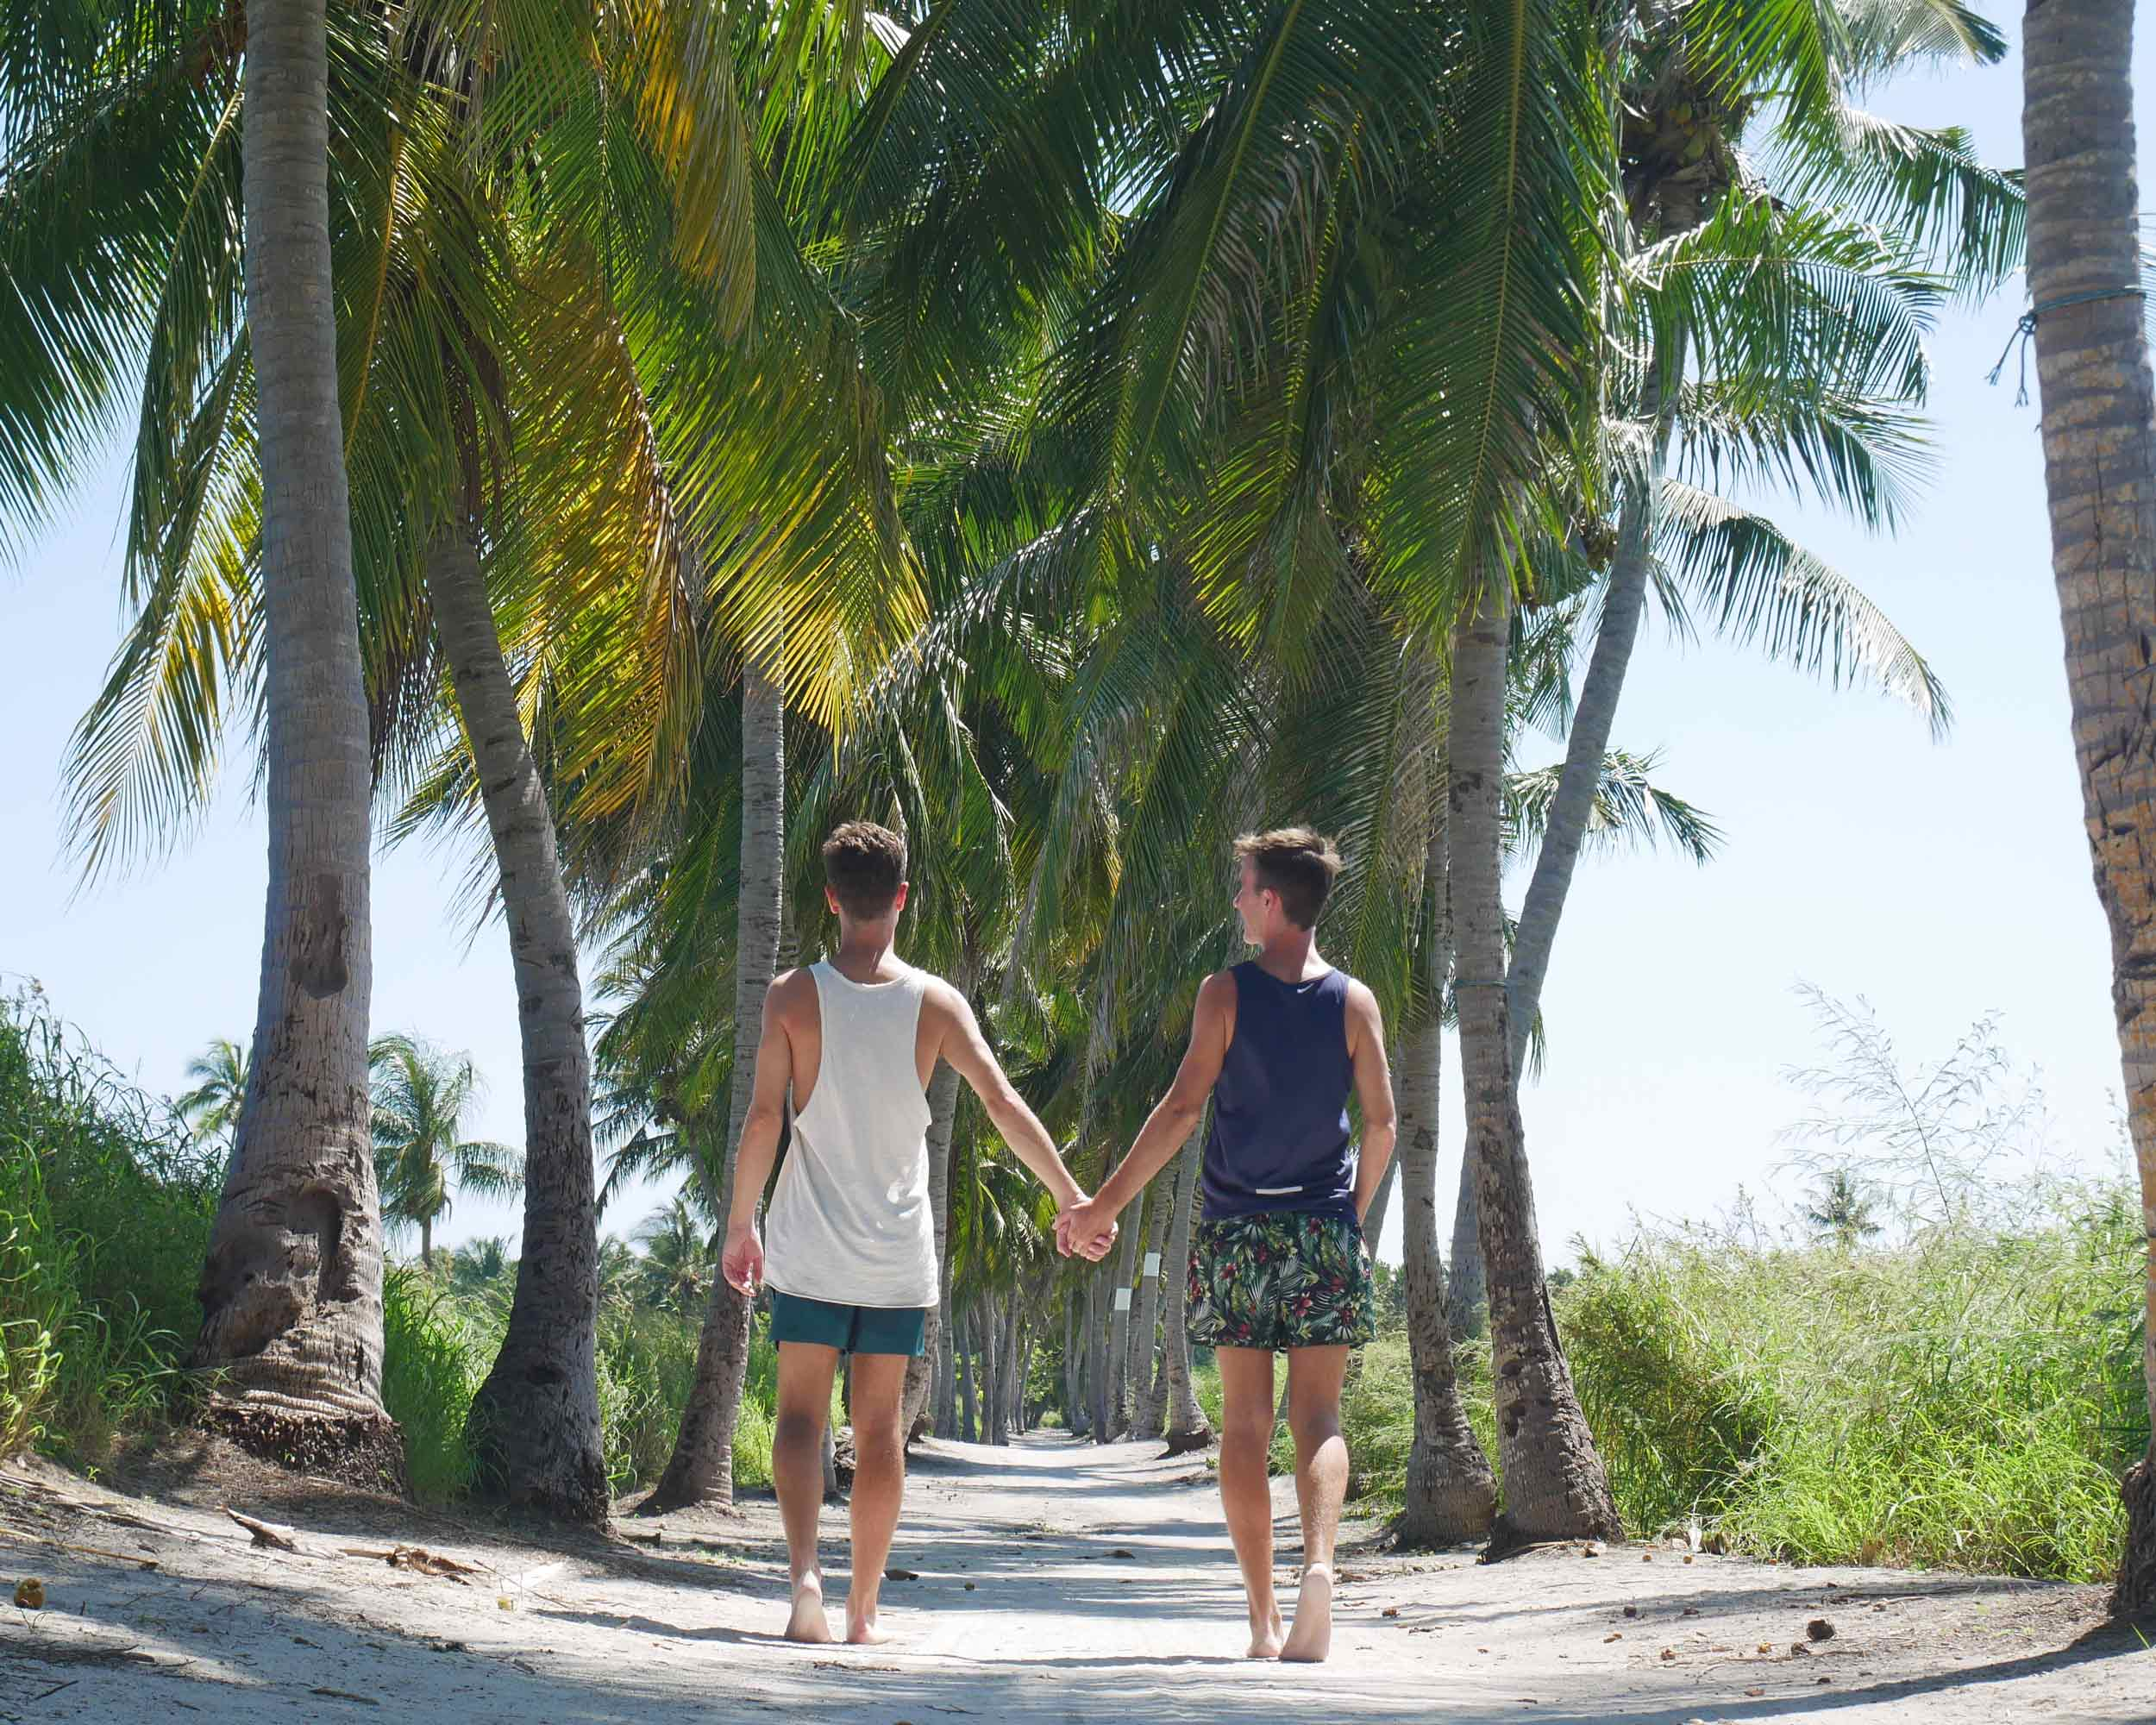 On our final evening walking along our favorite sandy, palm-lined lane, Trey asked Martin if he'd like to walk side-by-side in the journey of life, forever. Yes!